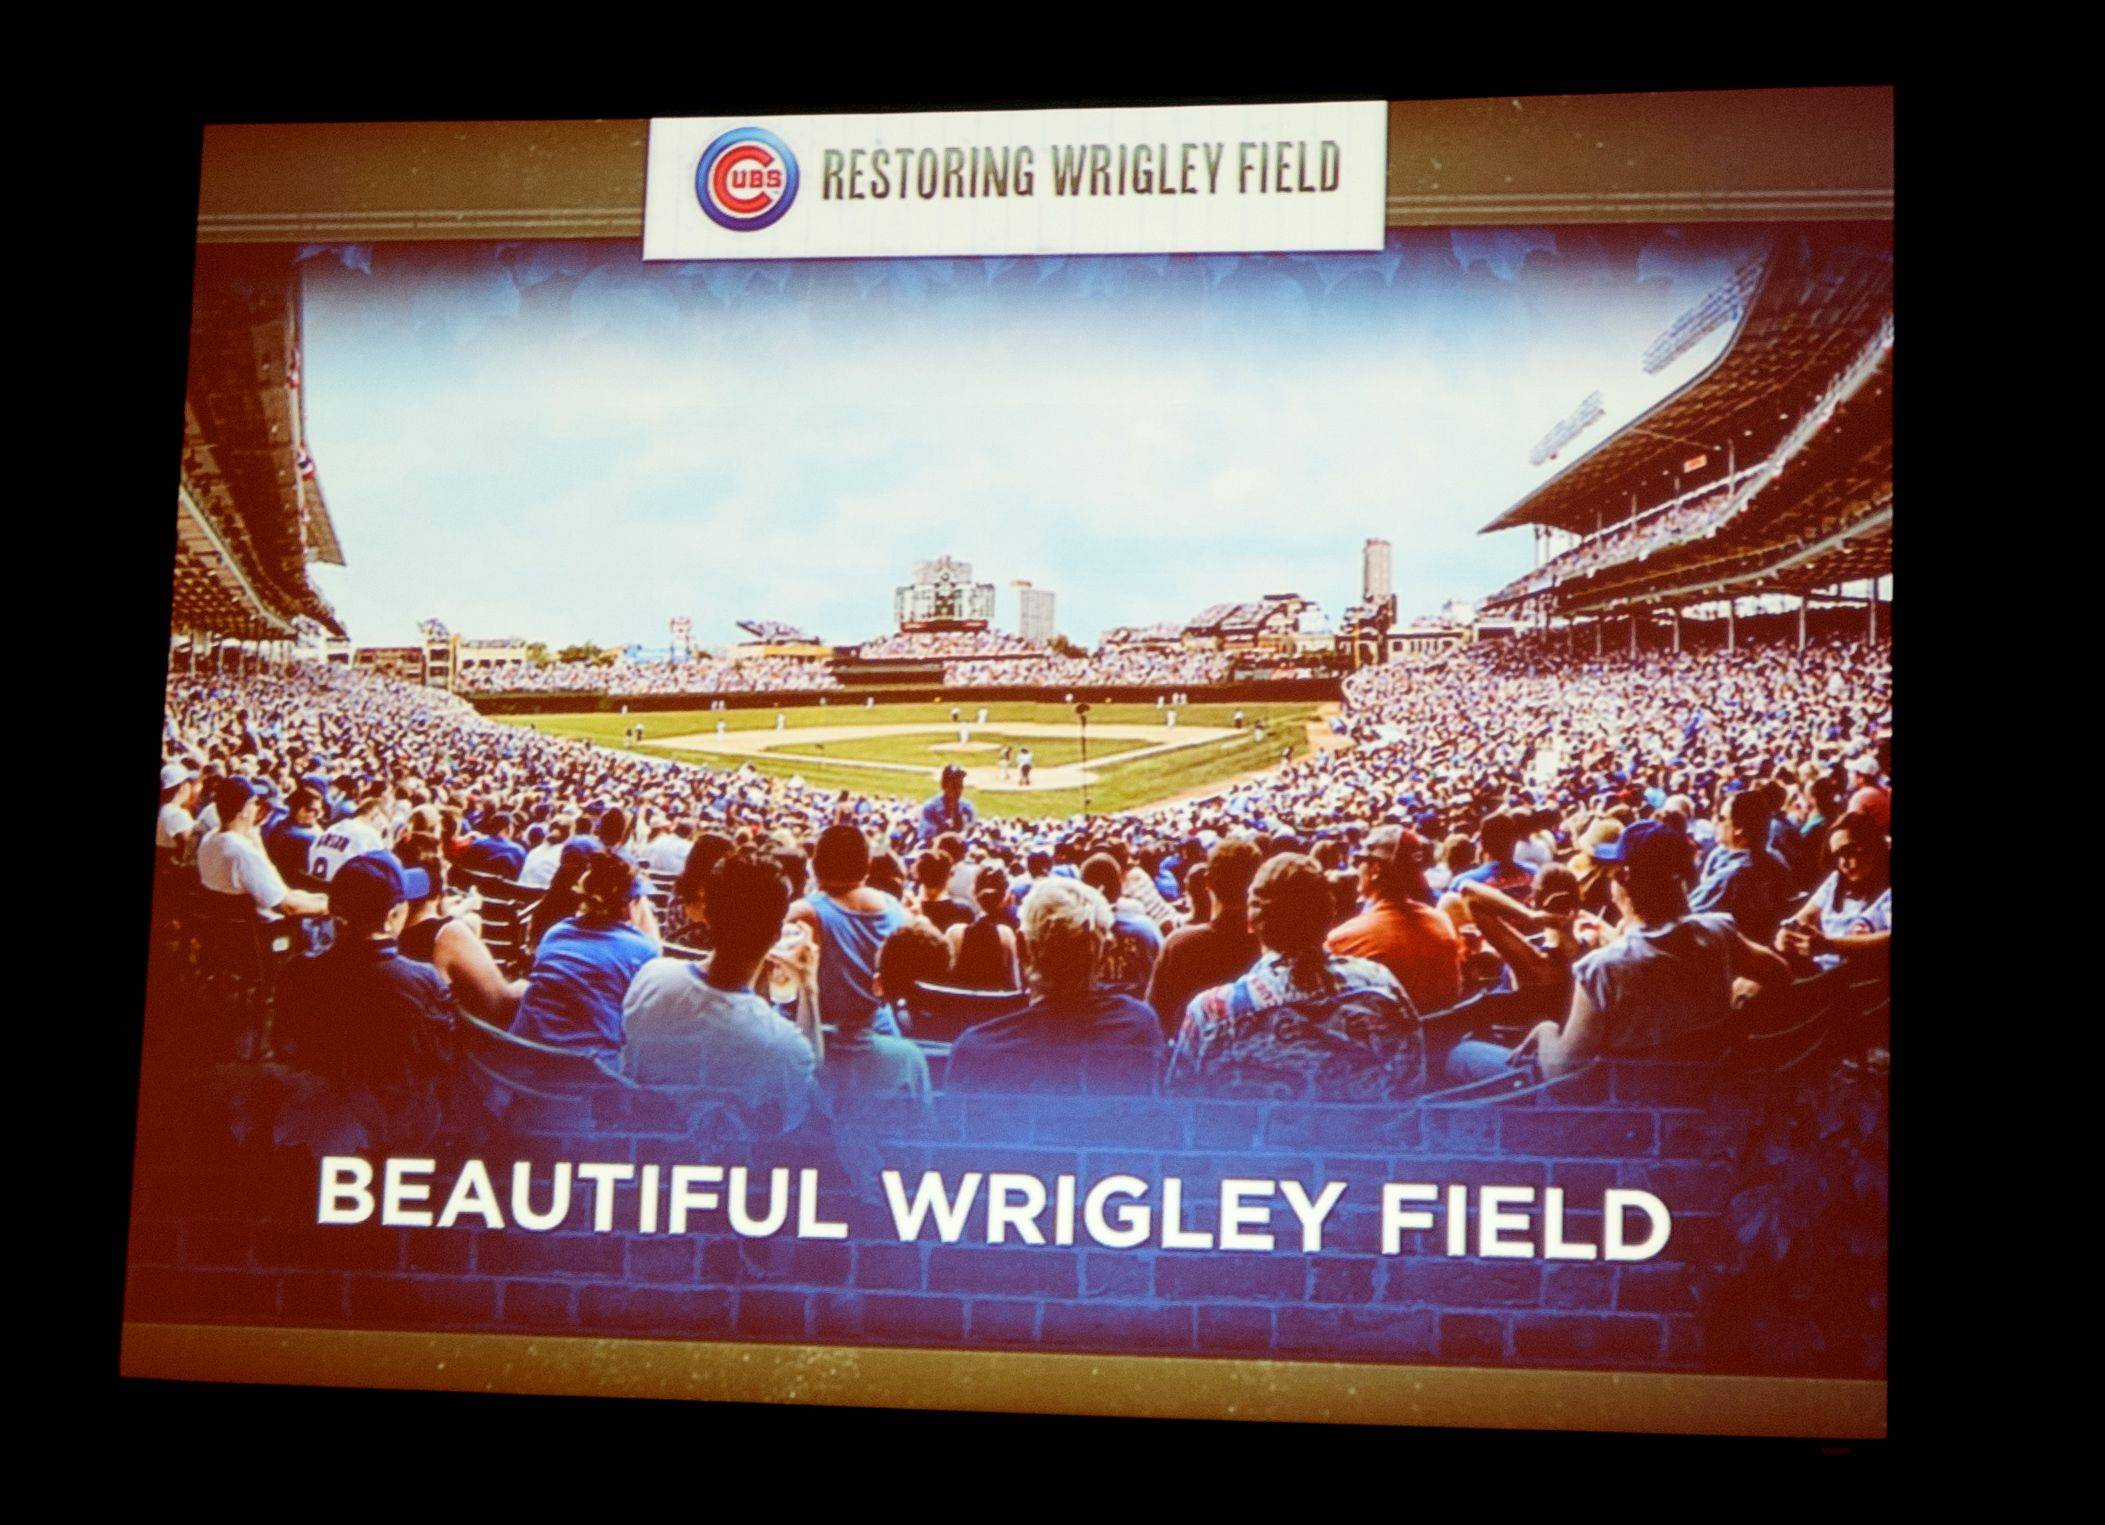 A rendering of the view Cubs fan would have from a renovated Wrigley Field.